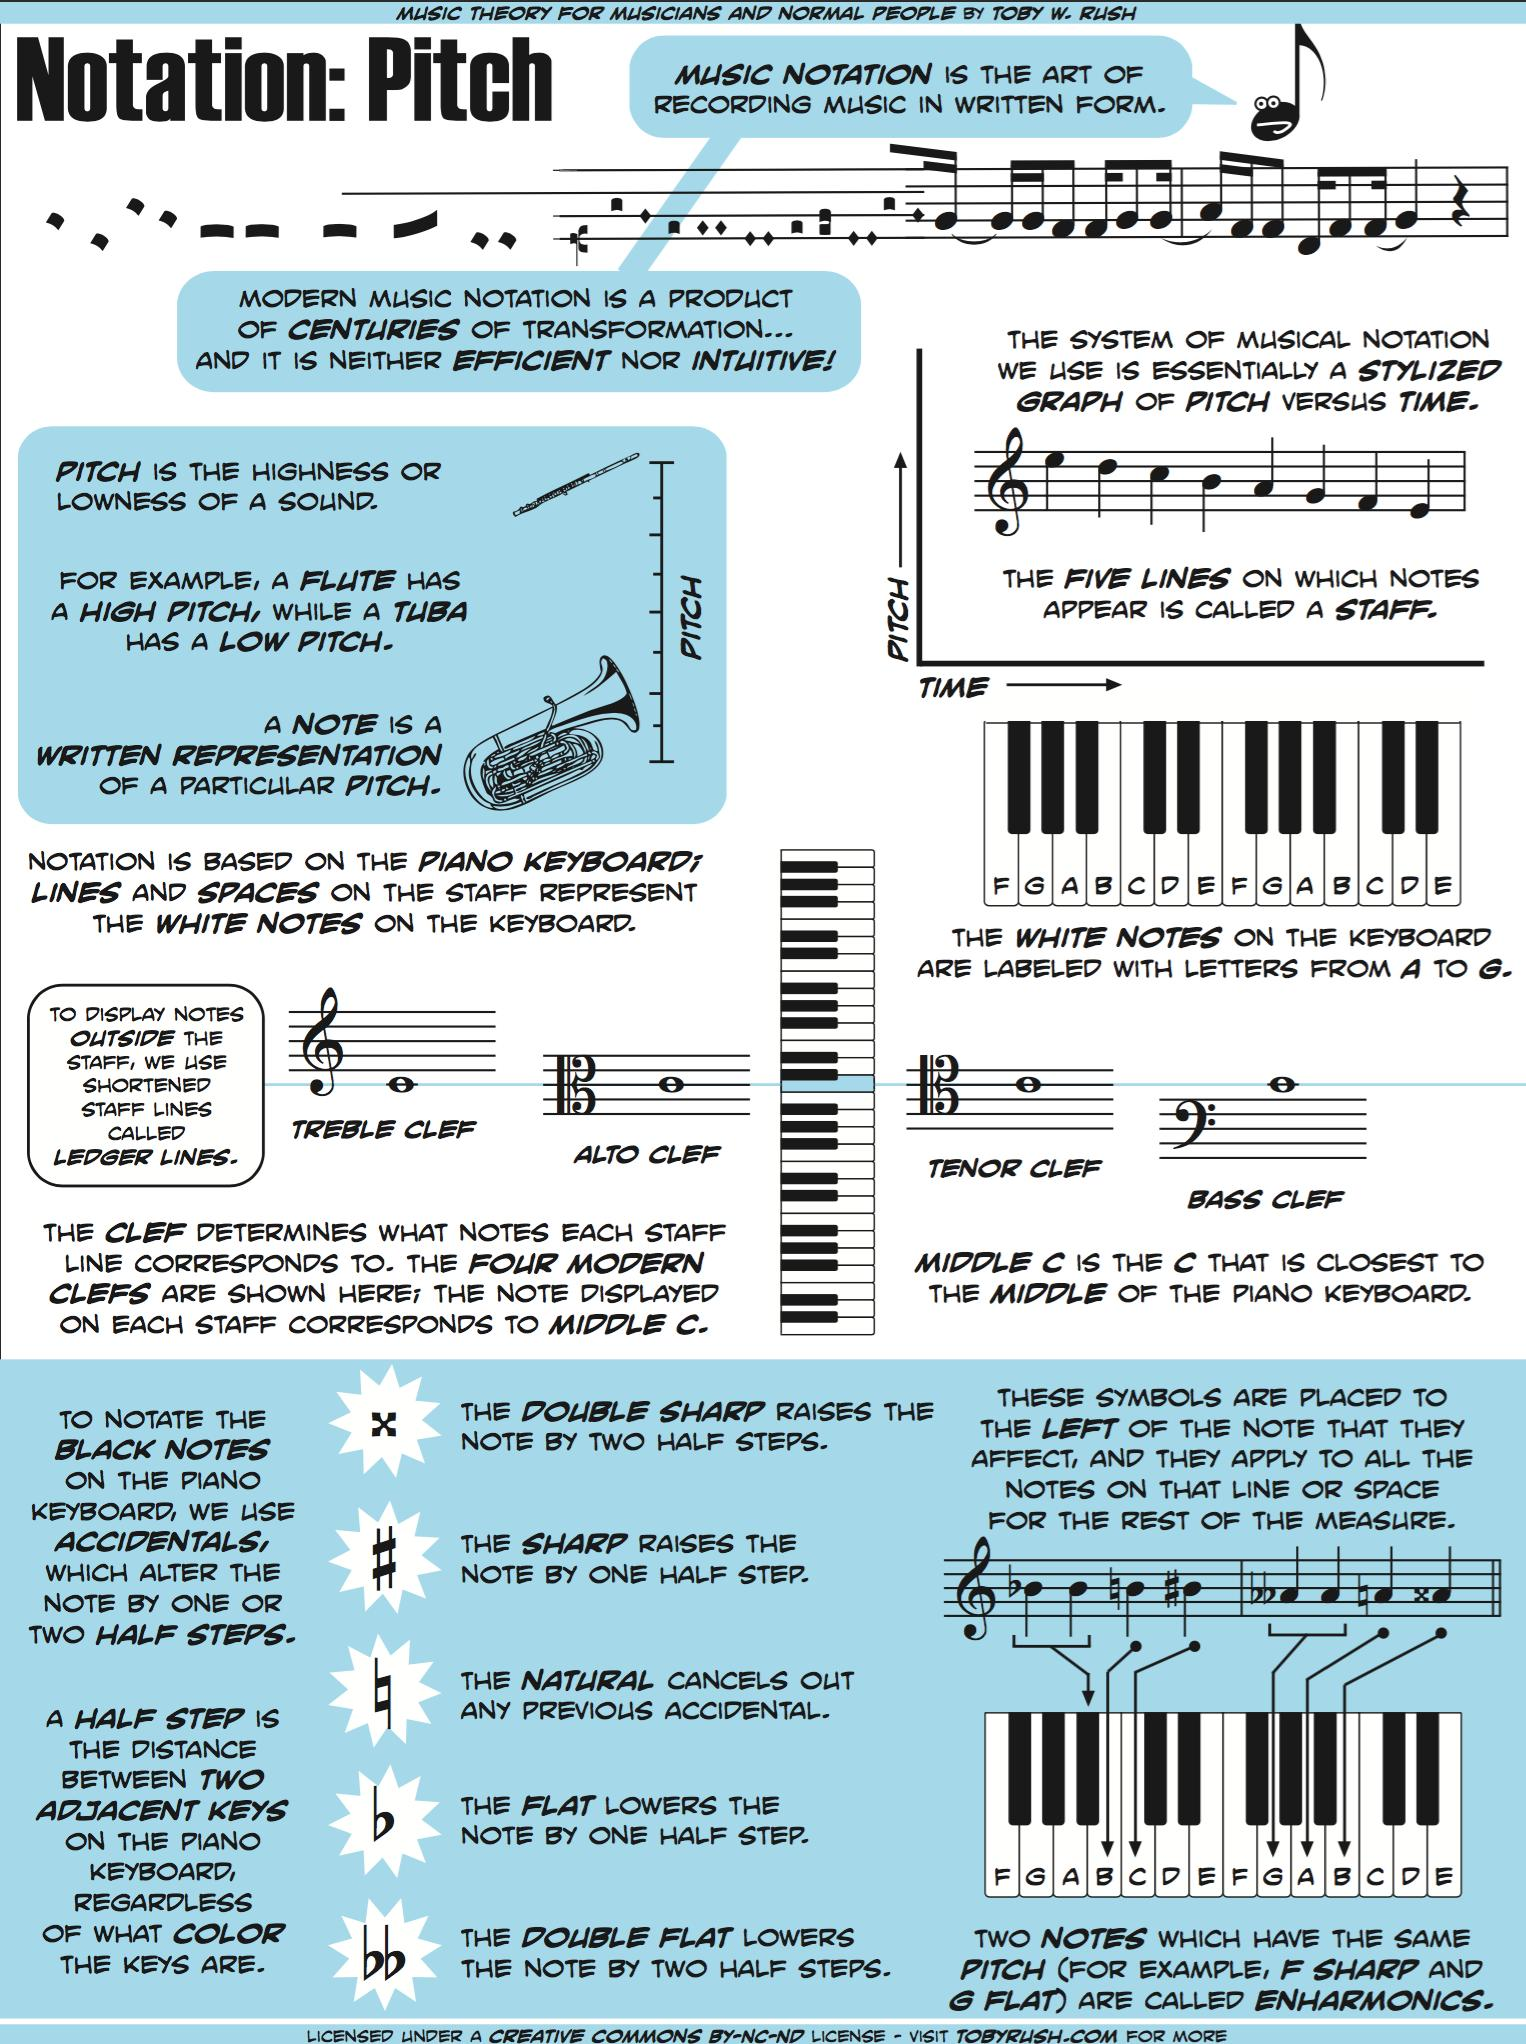 Music Theory For Musicians And Normal People In 50 Genius Graphics